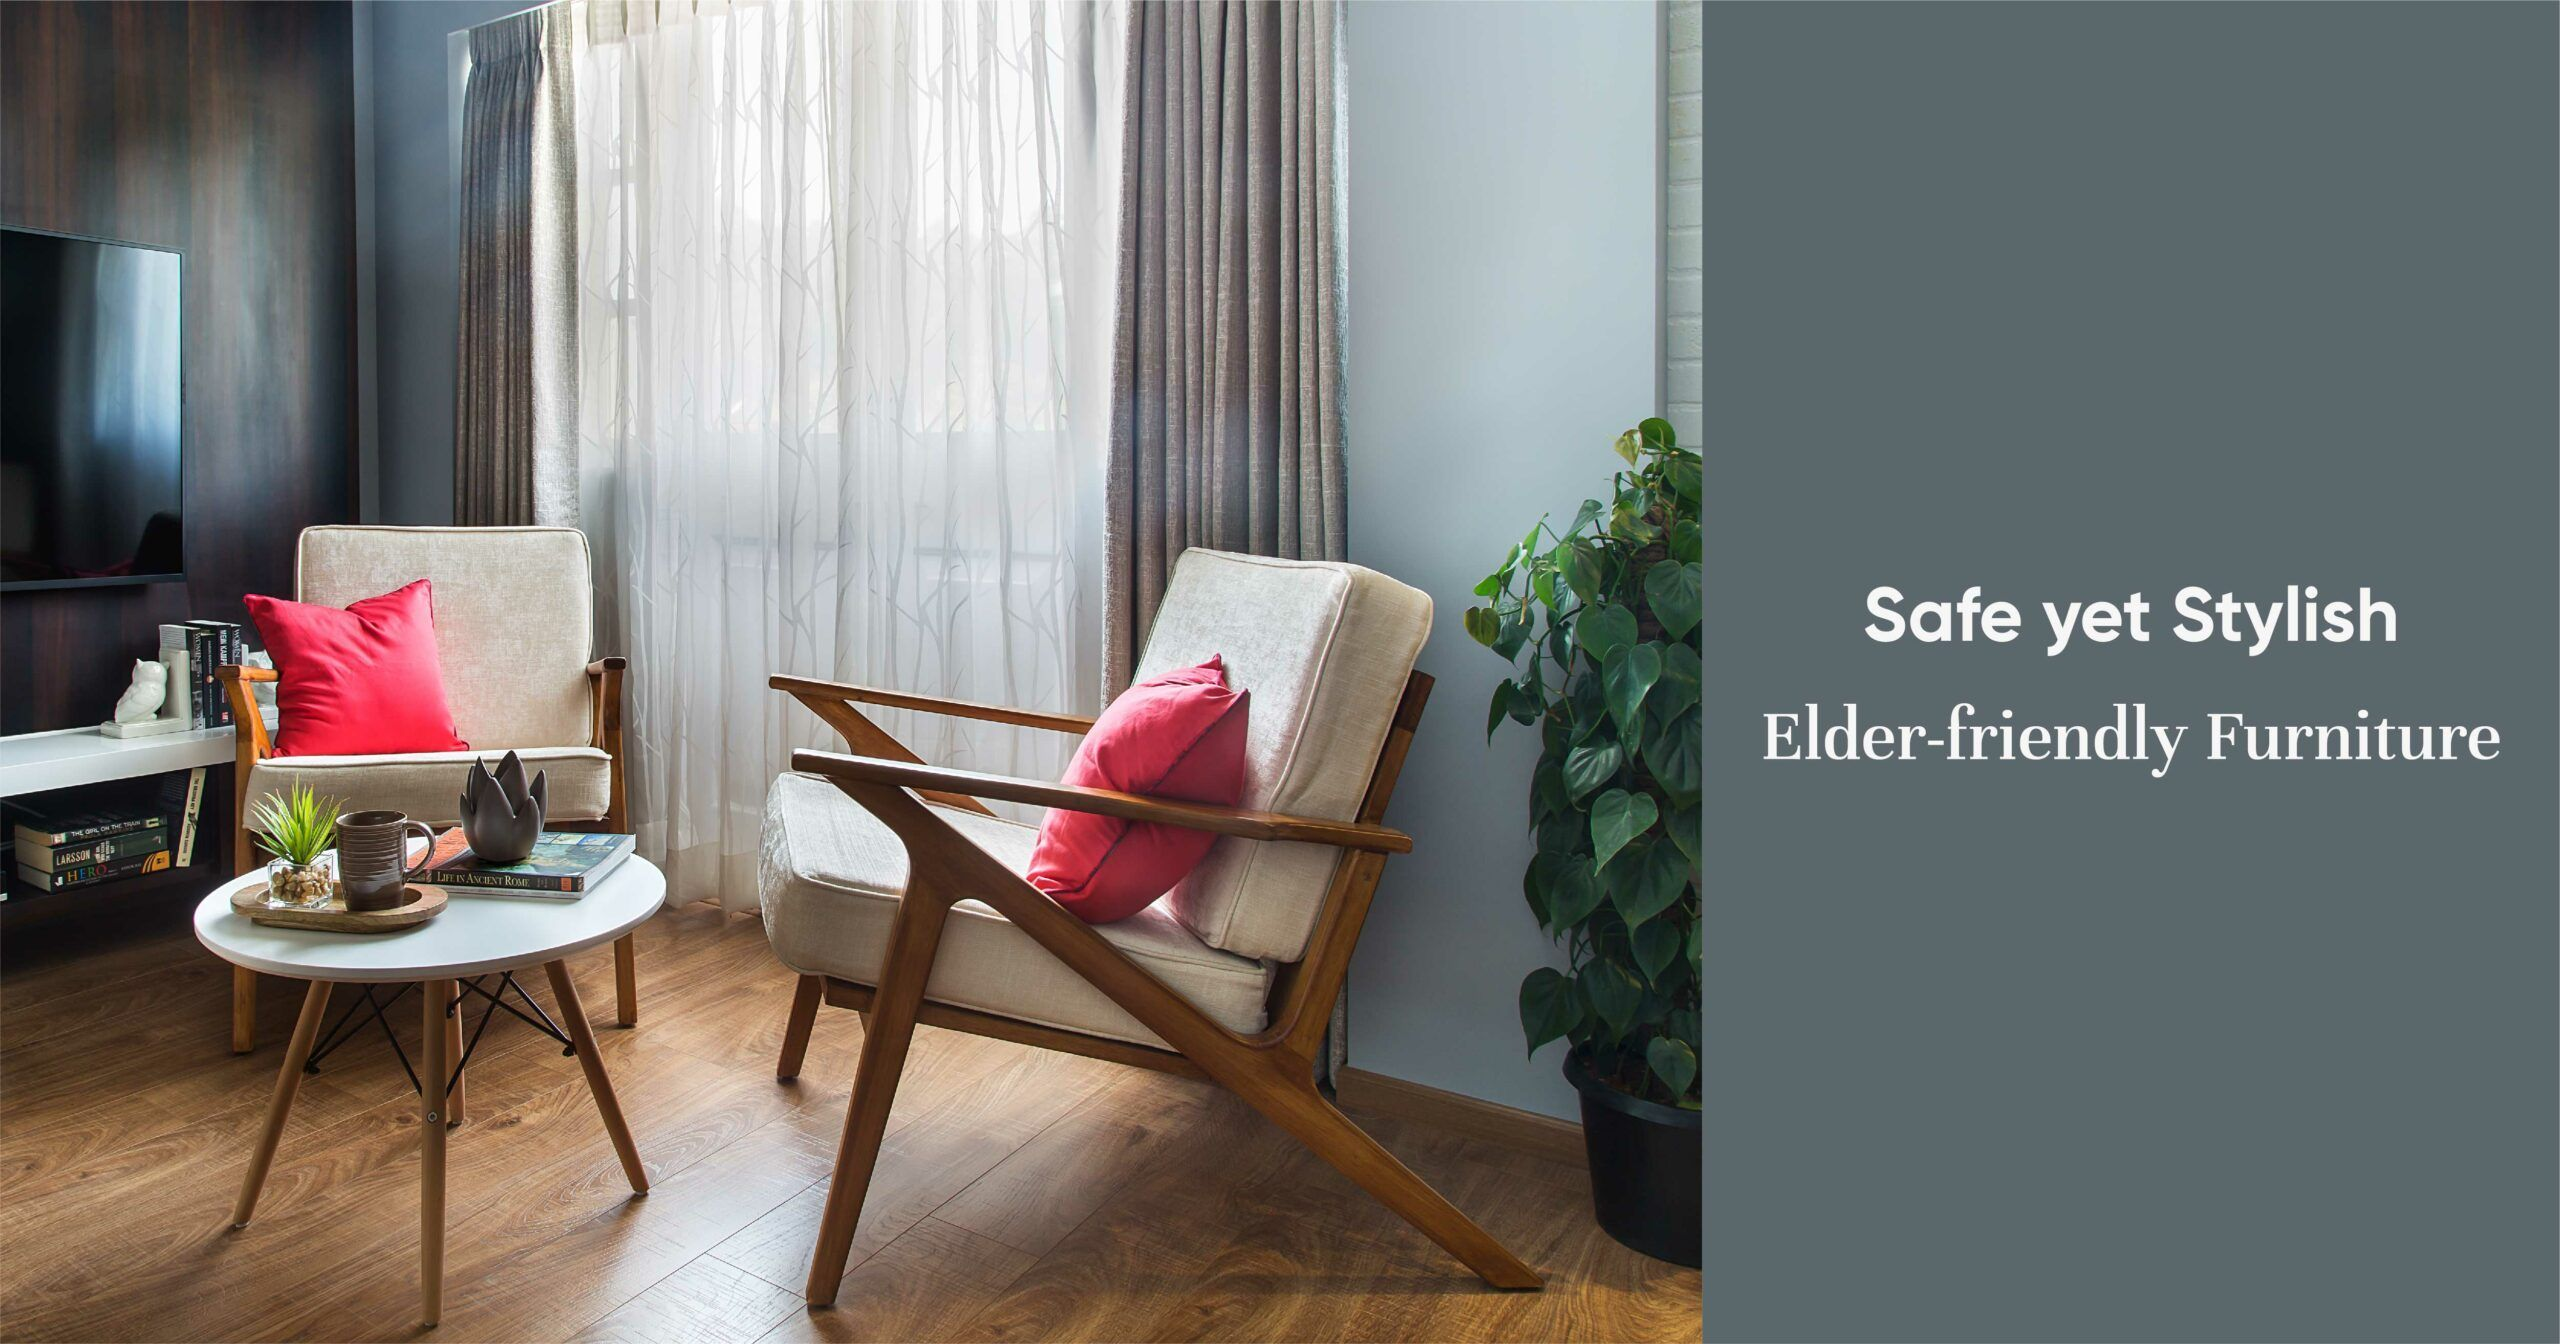 How To Choose Furniture for Senior Citizens